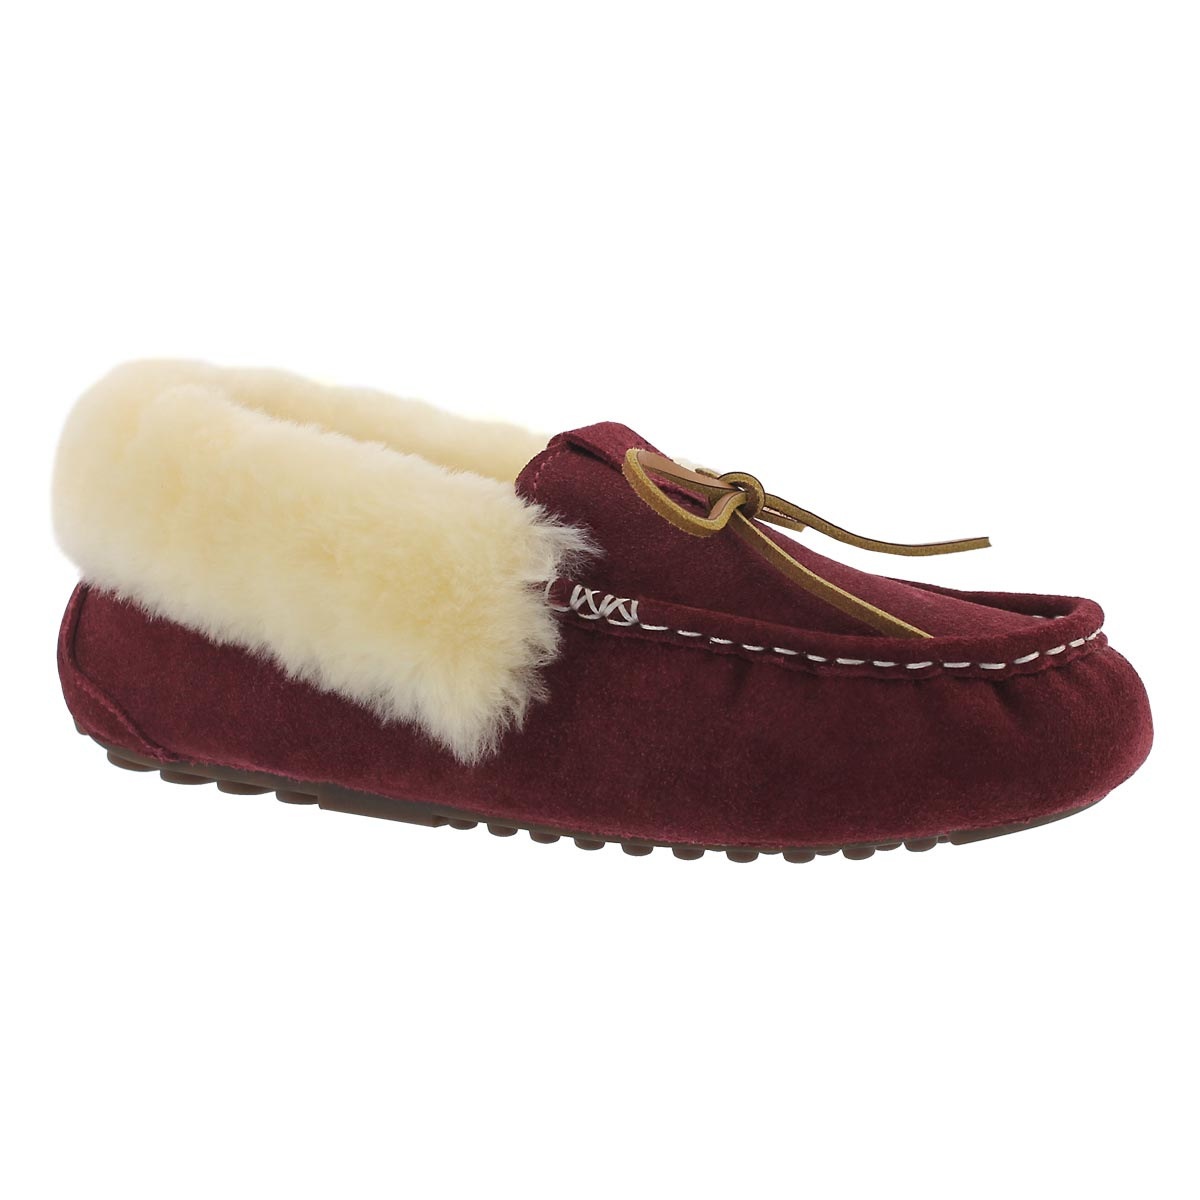 Lds Patty burg shearling lined suede moc